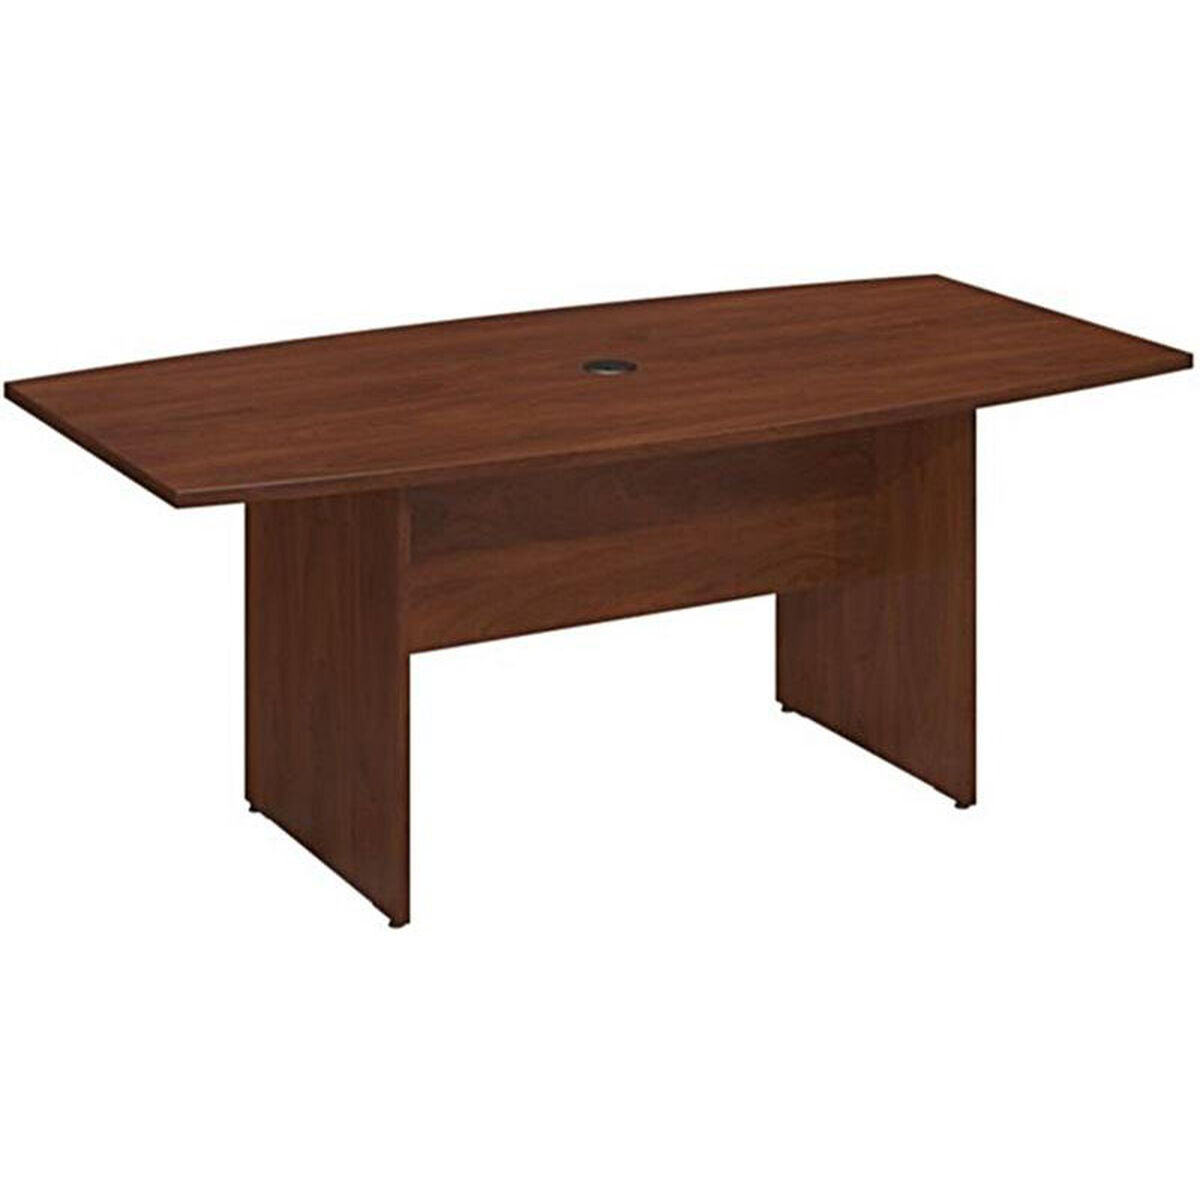 Boat Top Conference Table TBHC Bizchaircom - 36 conference table